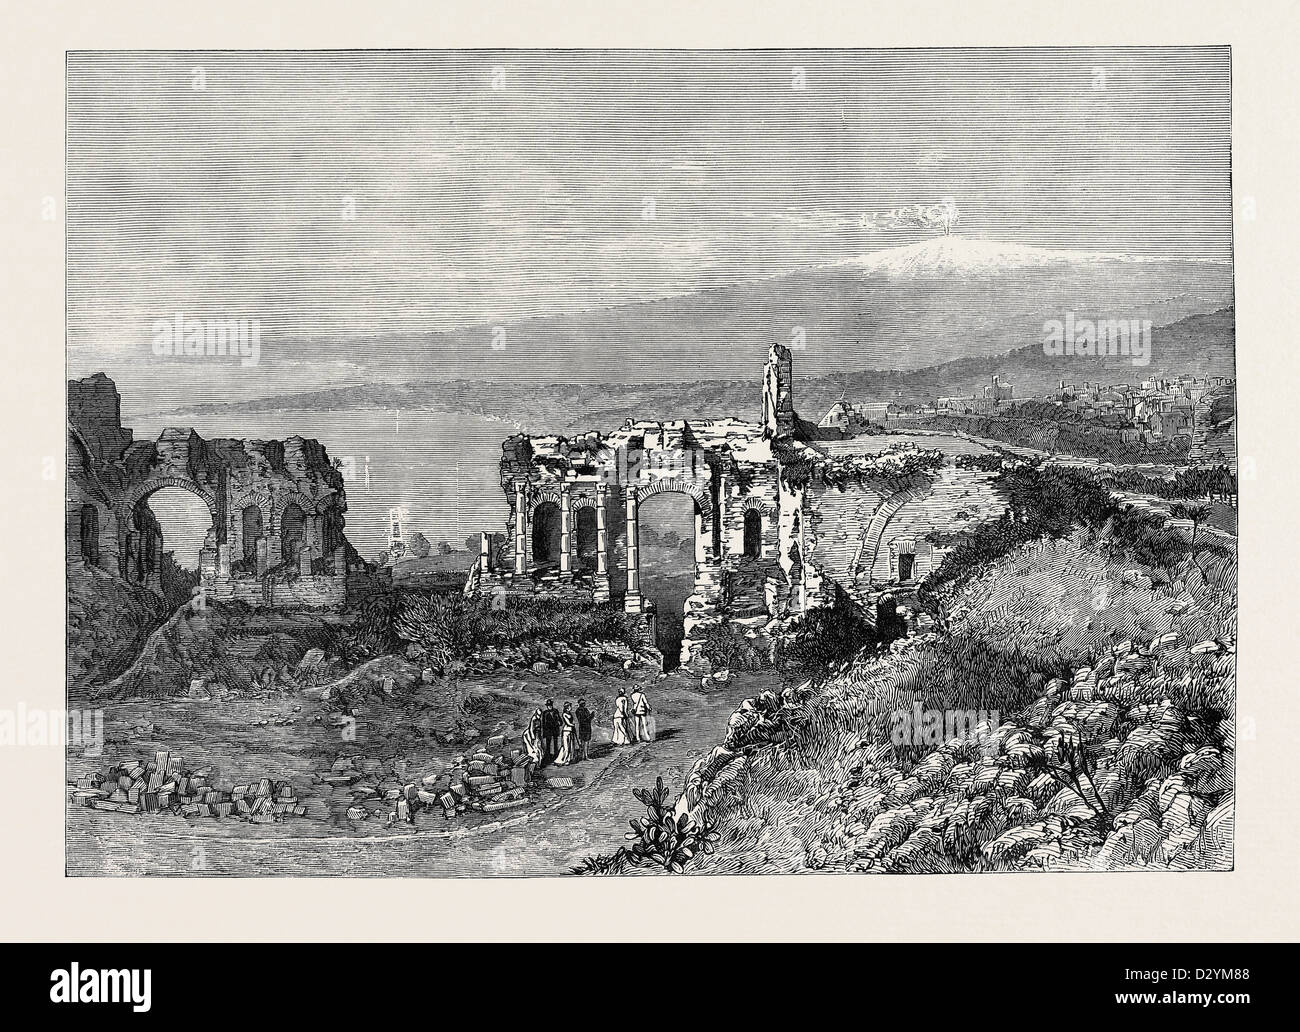 THE DUKE AND DUCHESS OF CONNAUGHT IN SICILY: ANCIENT GREEK THEATRE AT TAORMINA 1879 - Stock Image